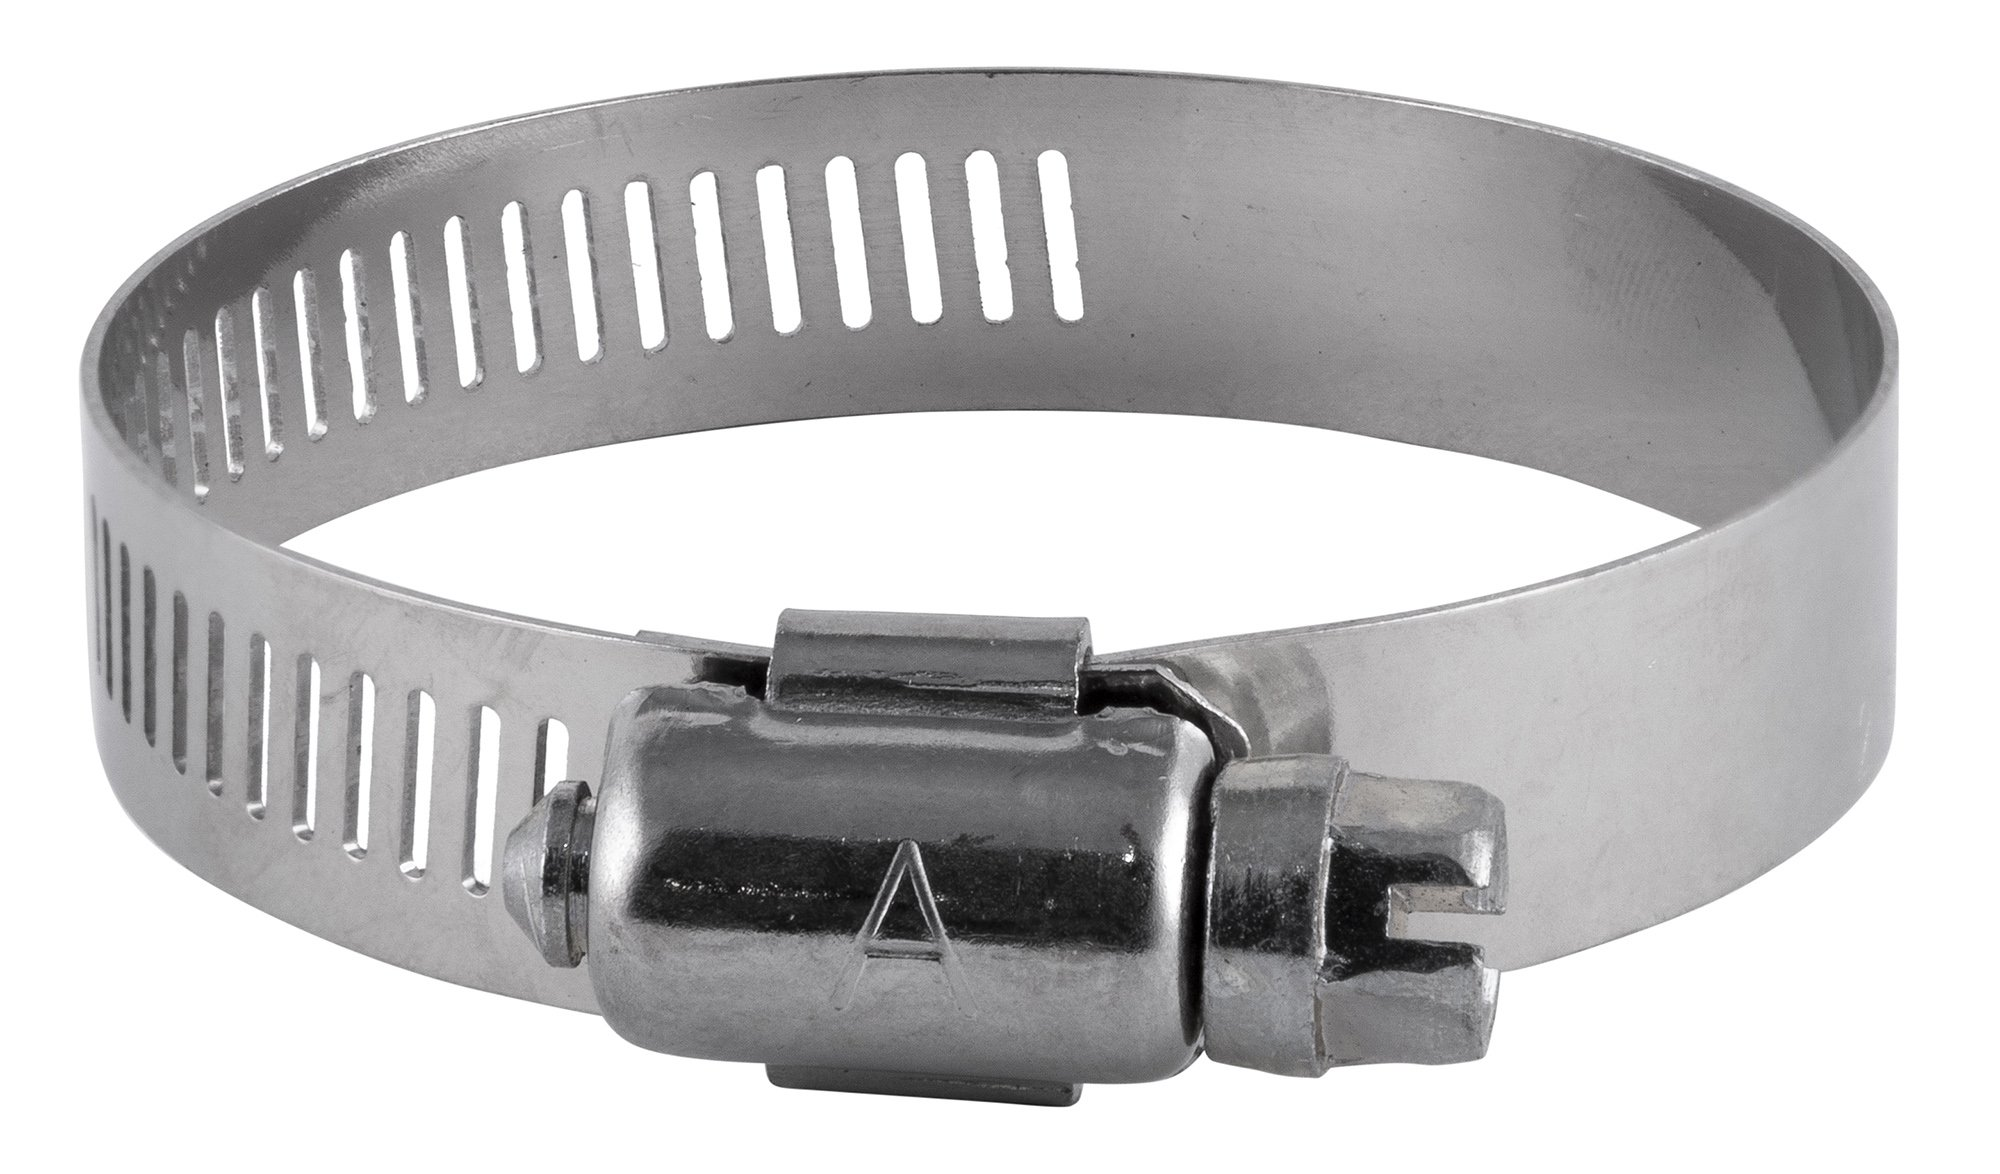 American Valve 10-Pack Worm Gear Hose Clamp, 1-5/16'' to 2-1/4'' (SAE size 28), CL28PK10, Stainless Steel Band & Housing